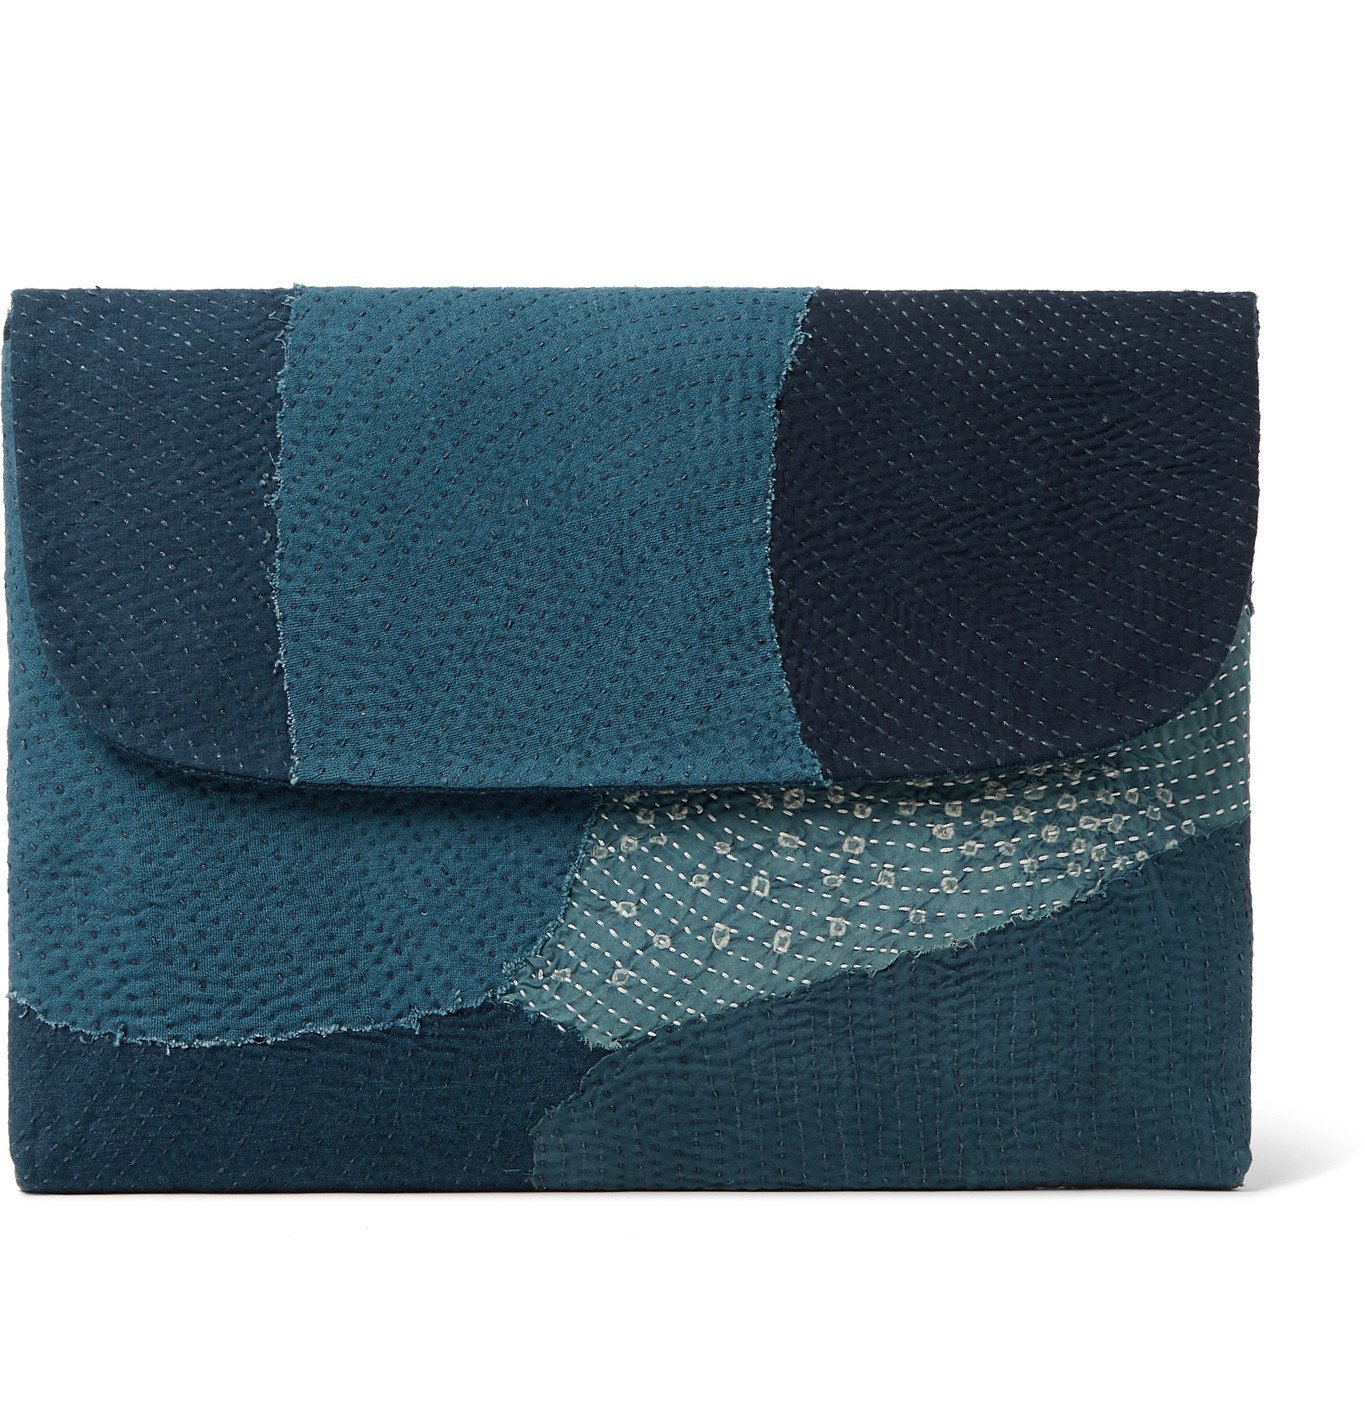 Photo: 11.11/eleven eleven - Patchwork Embroidered Cotton Laptop Case - Blue